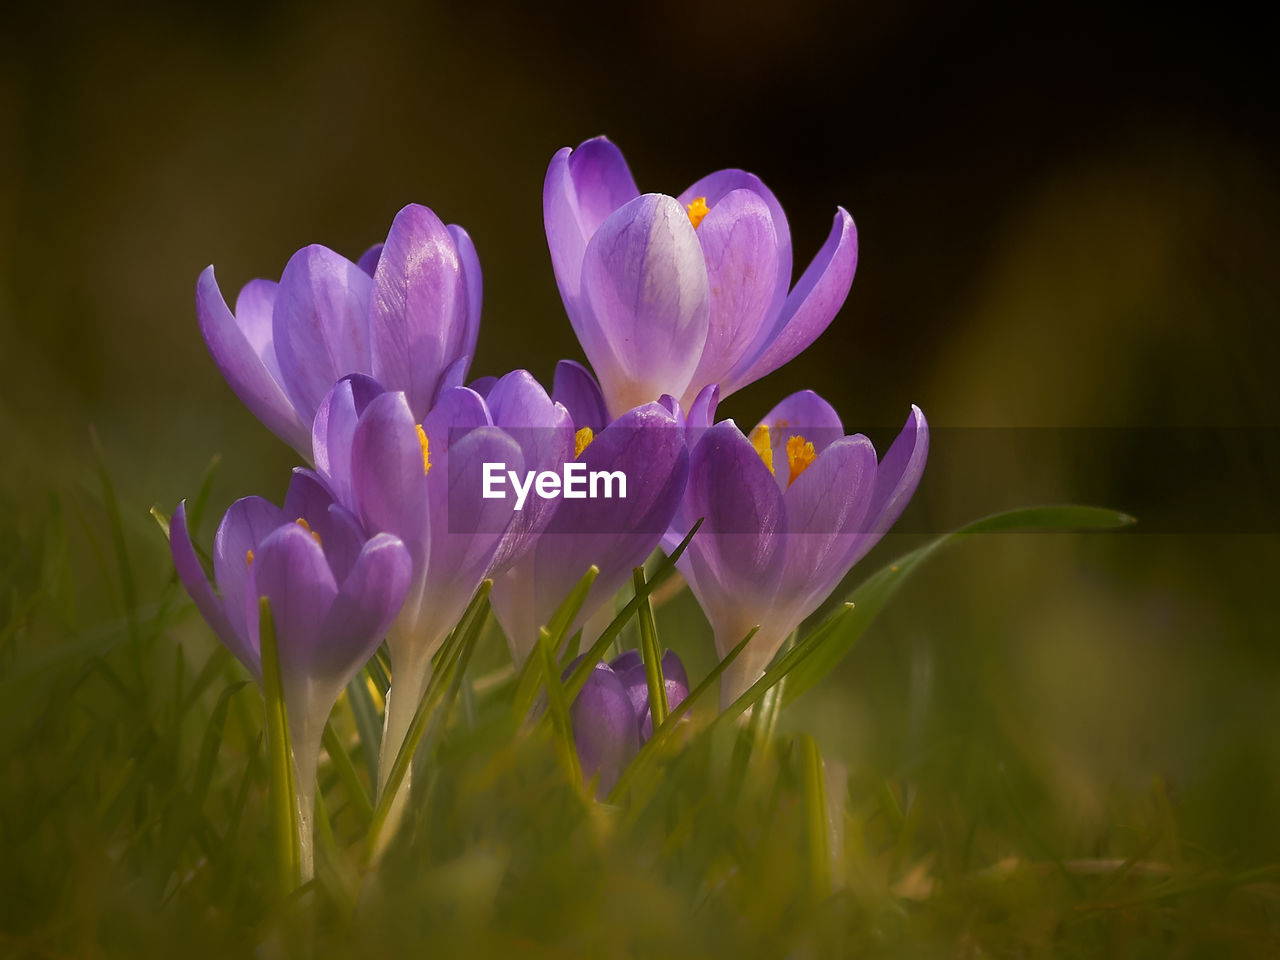 flower, flowering plant, plant, beauty in nature, freshness, vulnerability, fragility, petal, purple, close-up, growth, nature, no people, selective focus, field, land, crocus, flower head, inflorescence, iris